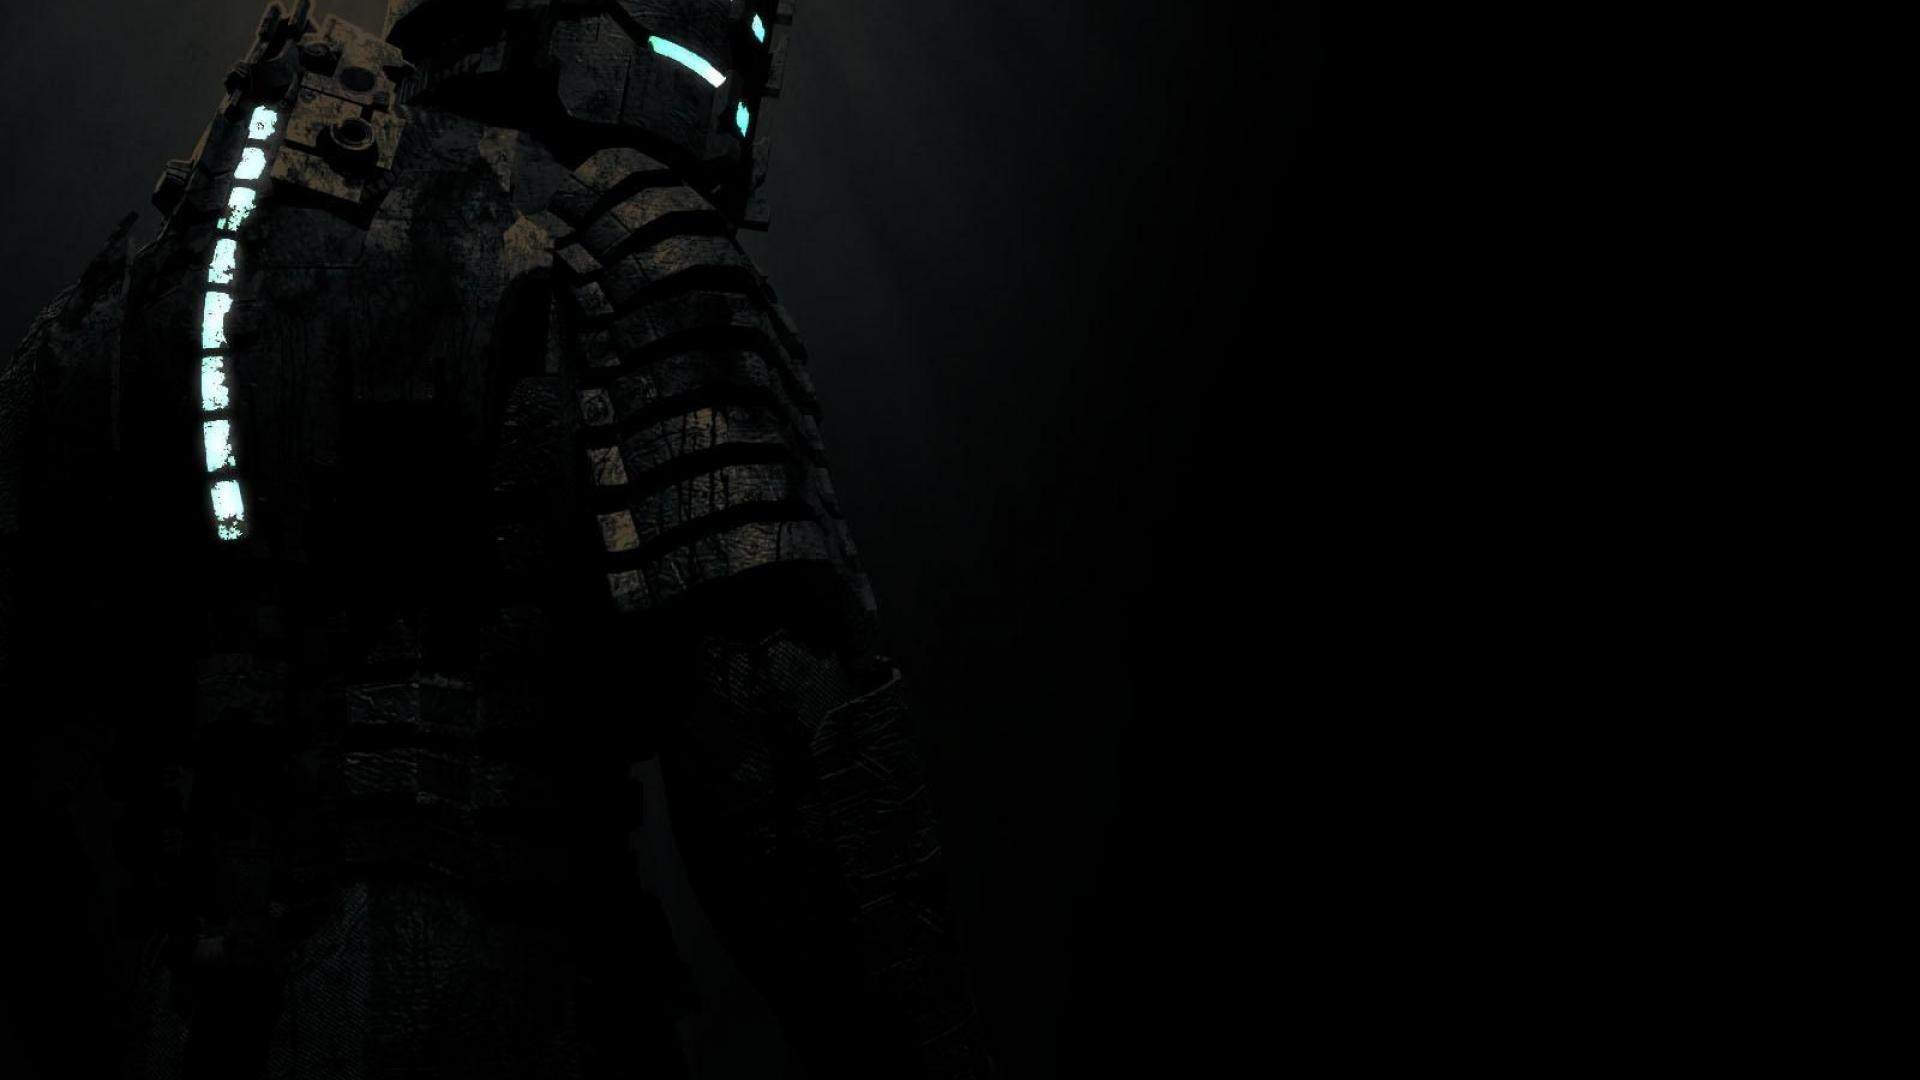 Dead space HD Wallpapers, Desktop Backgrounds, Mobile Wallpapers